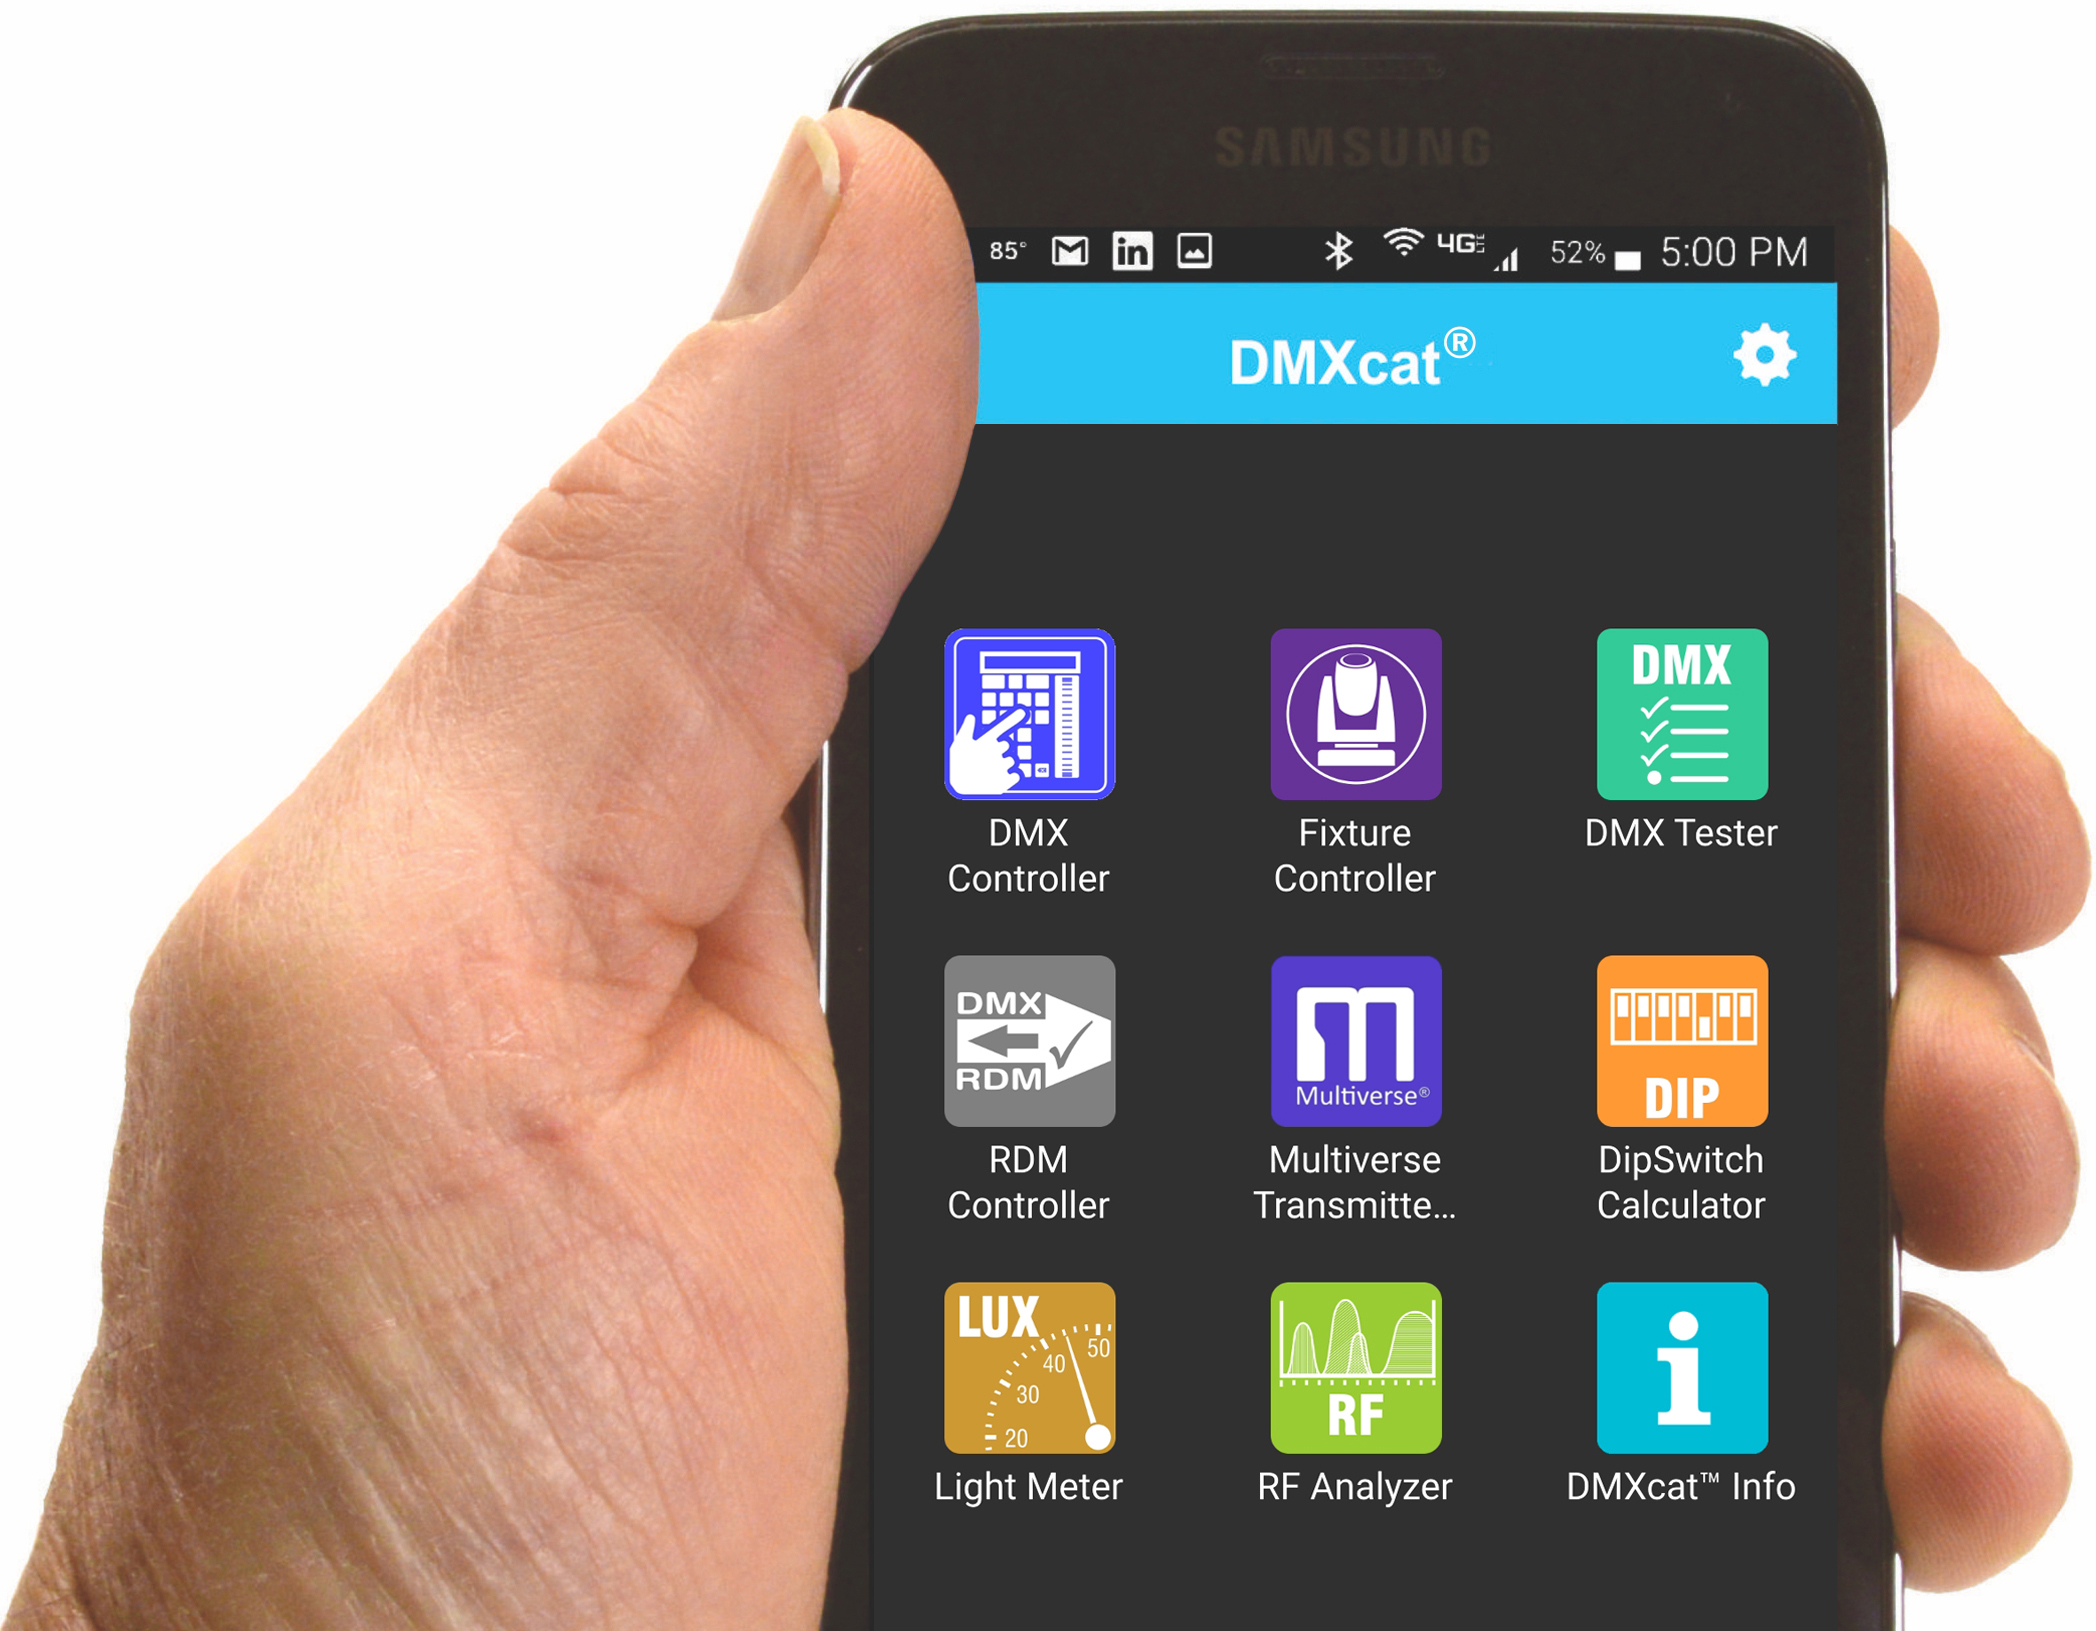 Holding the DMXcat app while connected to a Multiverse Transmitter